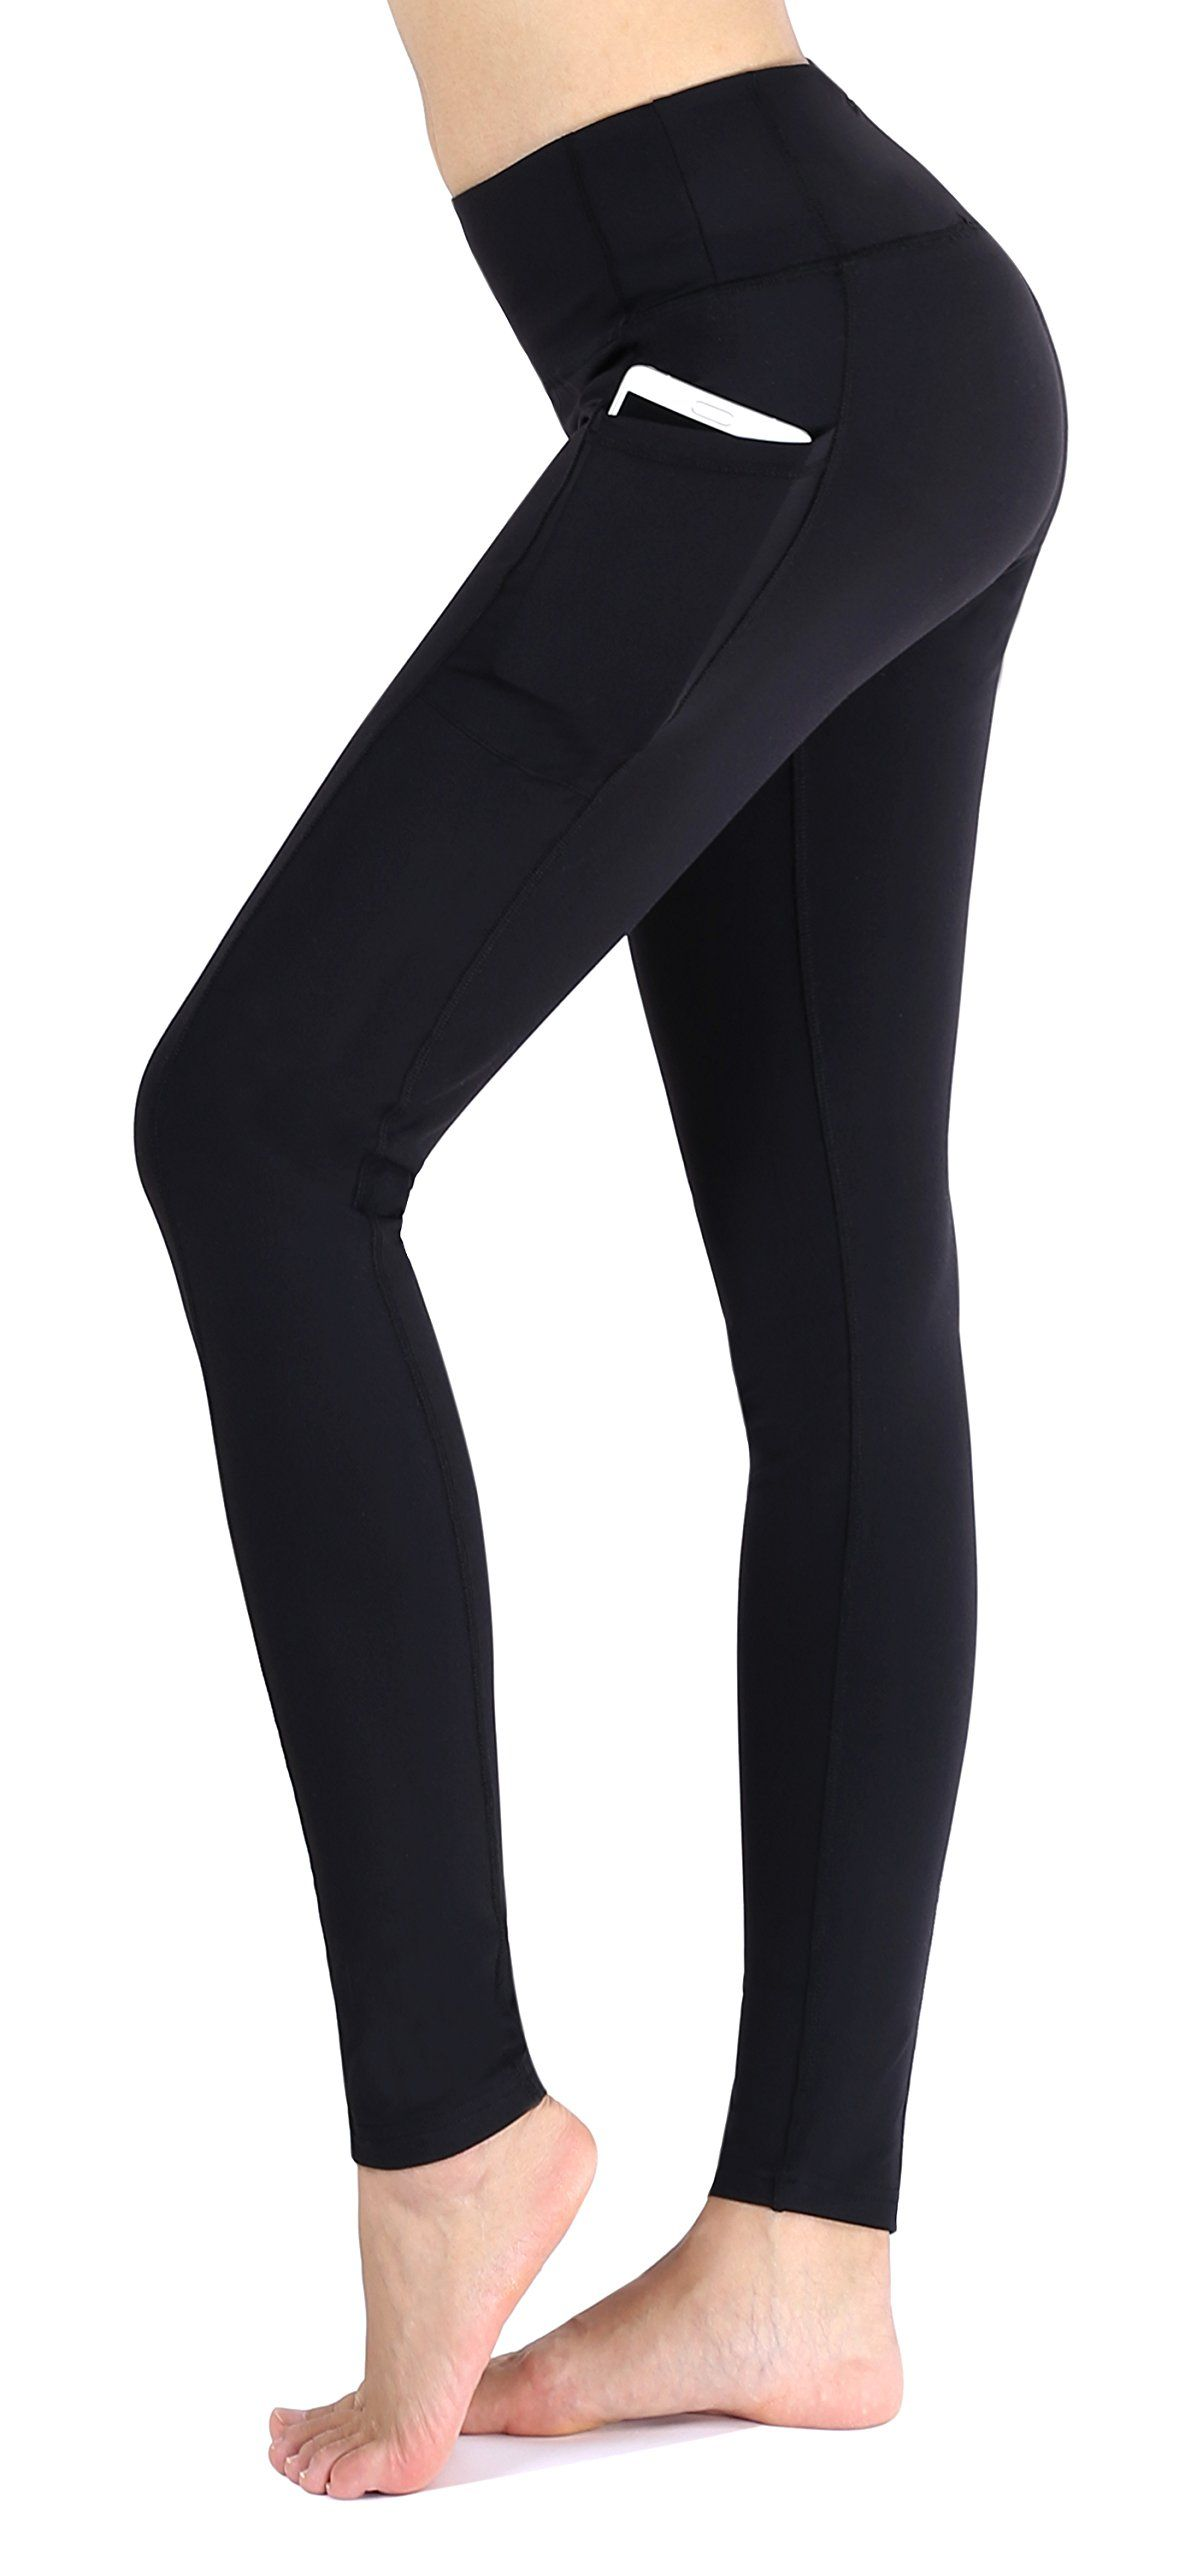 4d730d1a8a Neonysweets Women's Workout Leggings With Pocket Running Yoga Pants Black  L. 45% Nylon,